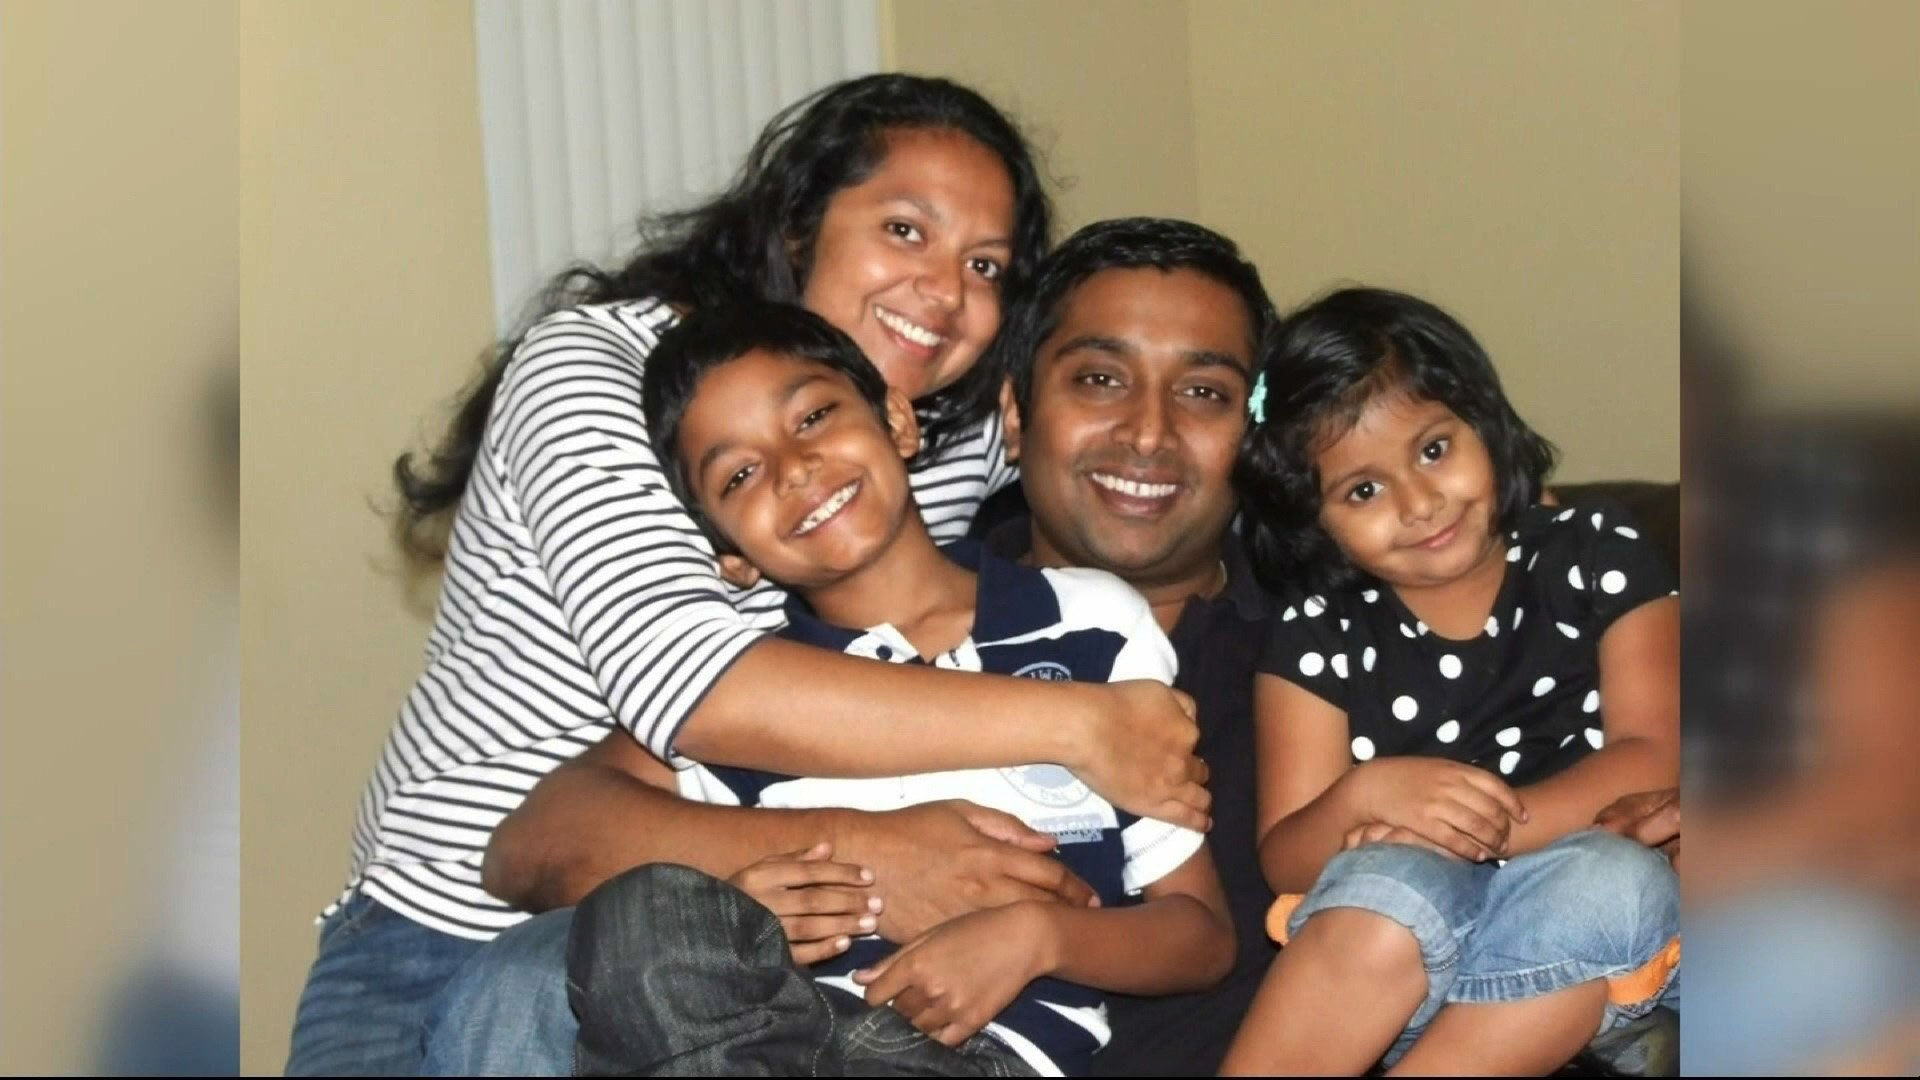 **Embargo: Los Angeles, CA**  Sandeep and Soumya Thottapilly are seen here with their children Siddhant, 12, and Saachi, 9.